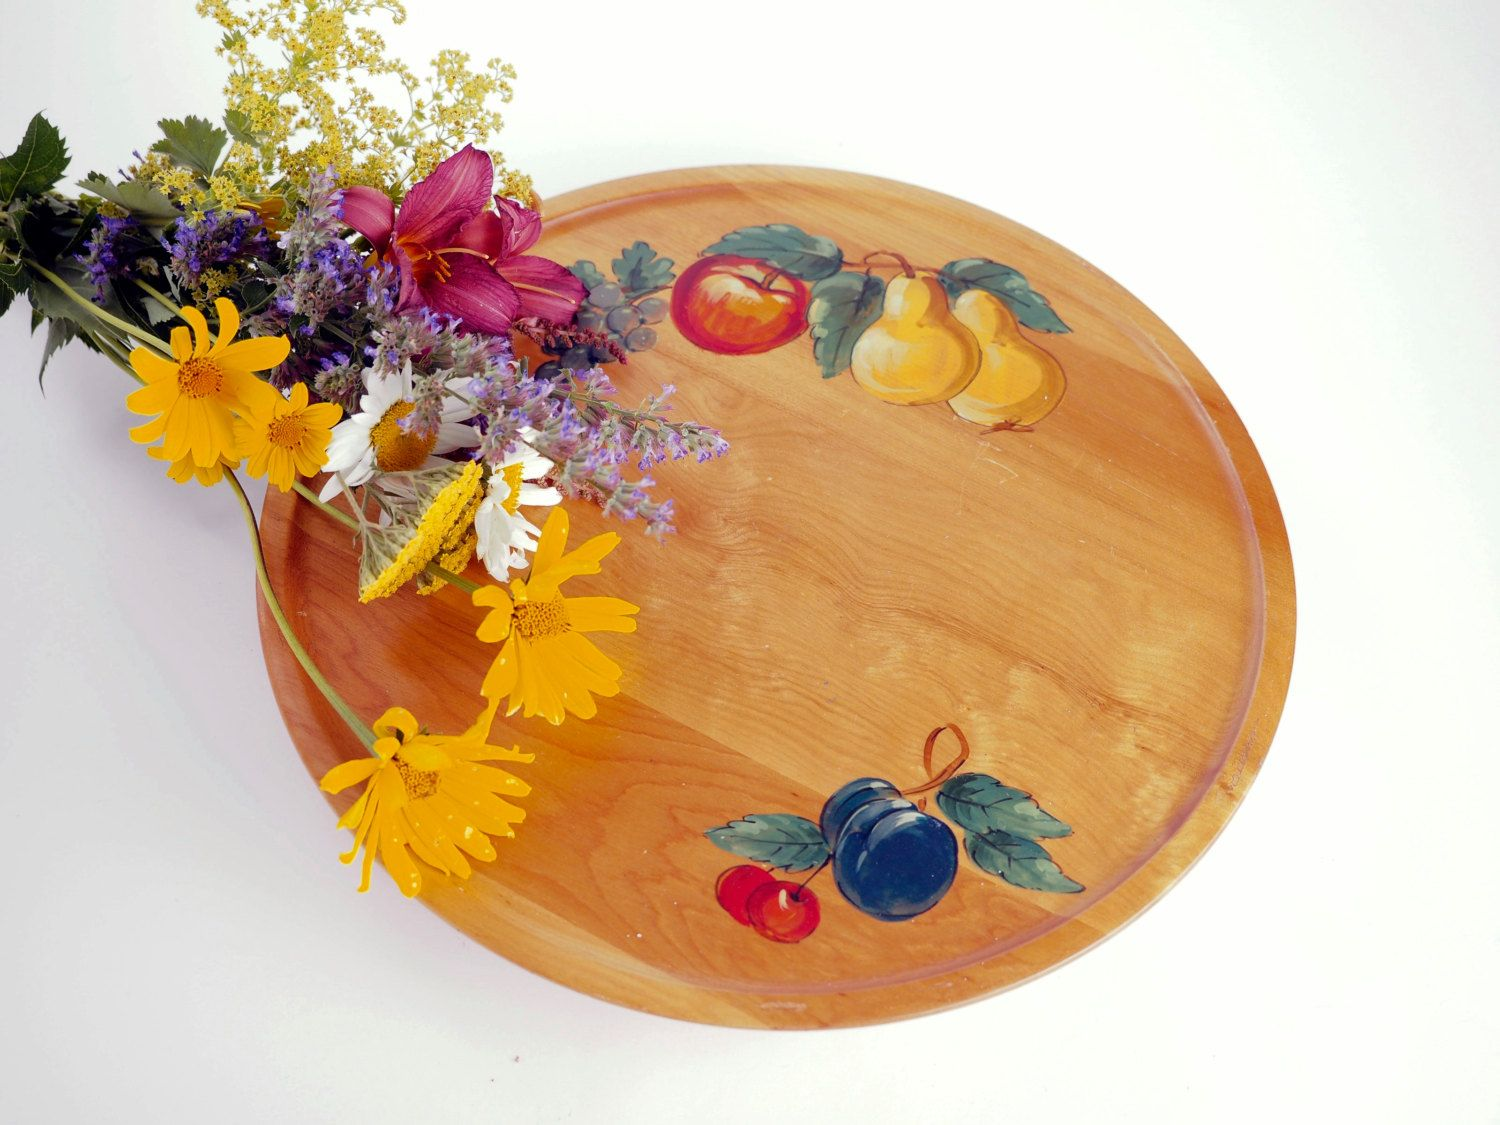 Lazy Susan Milwaukee Lazy Susan Hand Painted Wood With Fruit Design From Gh Specialty